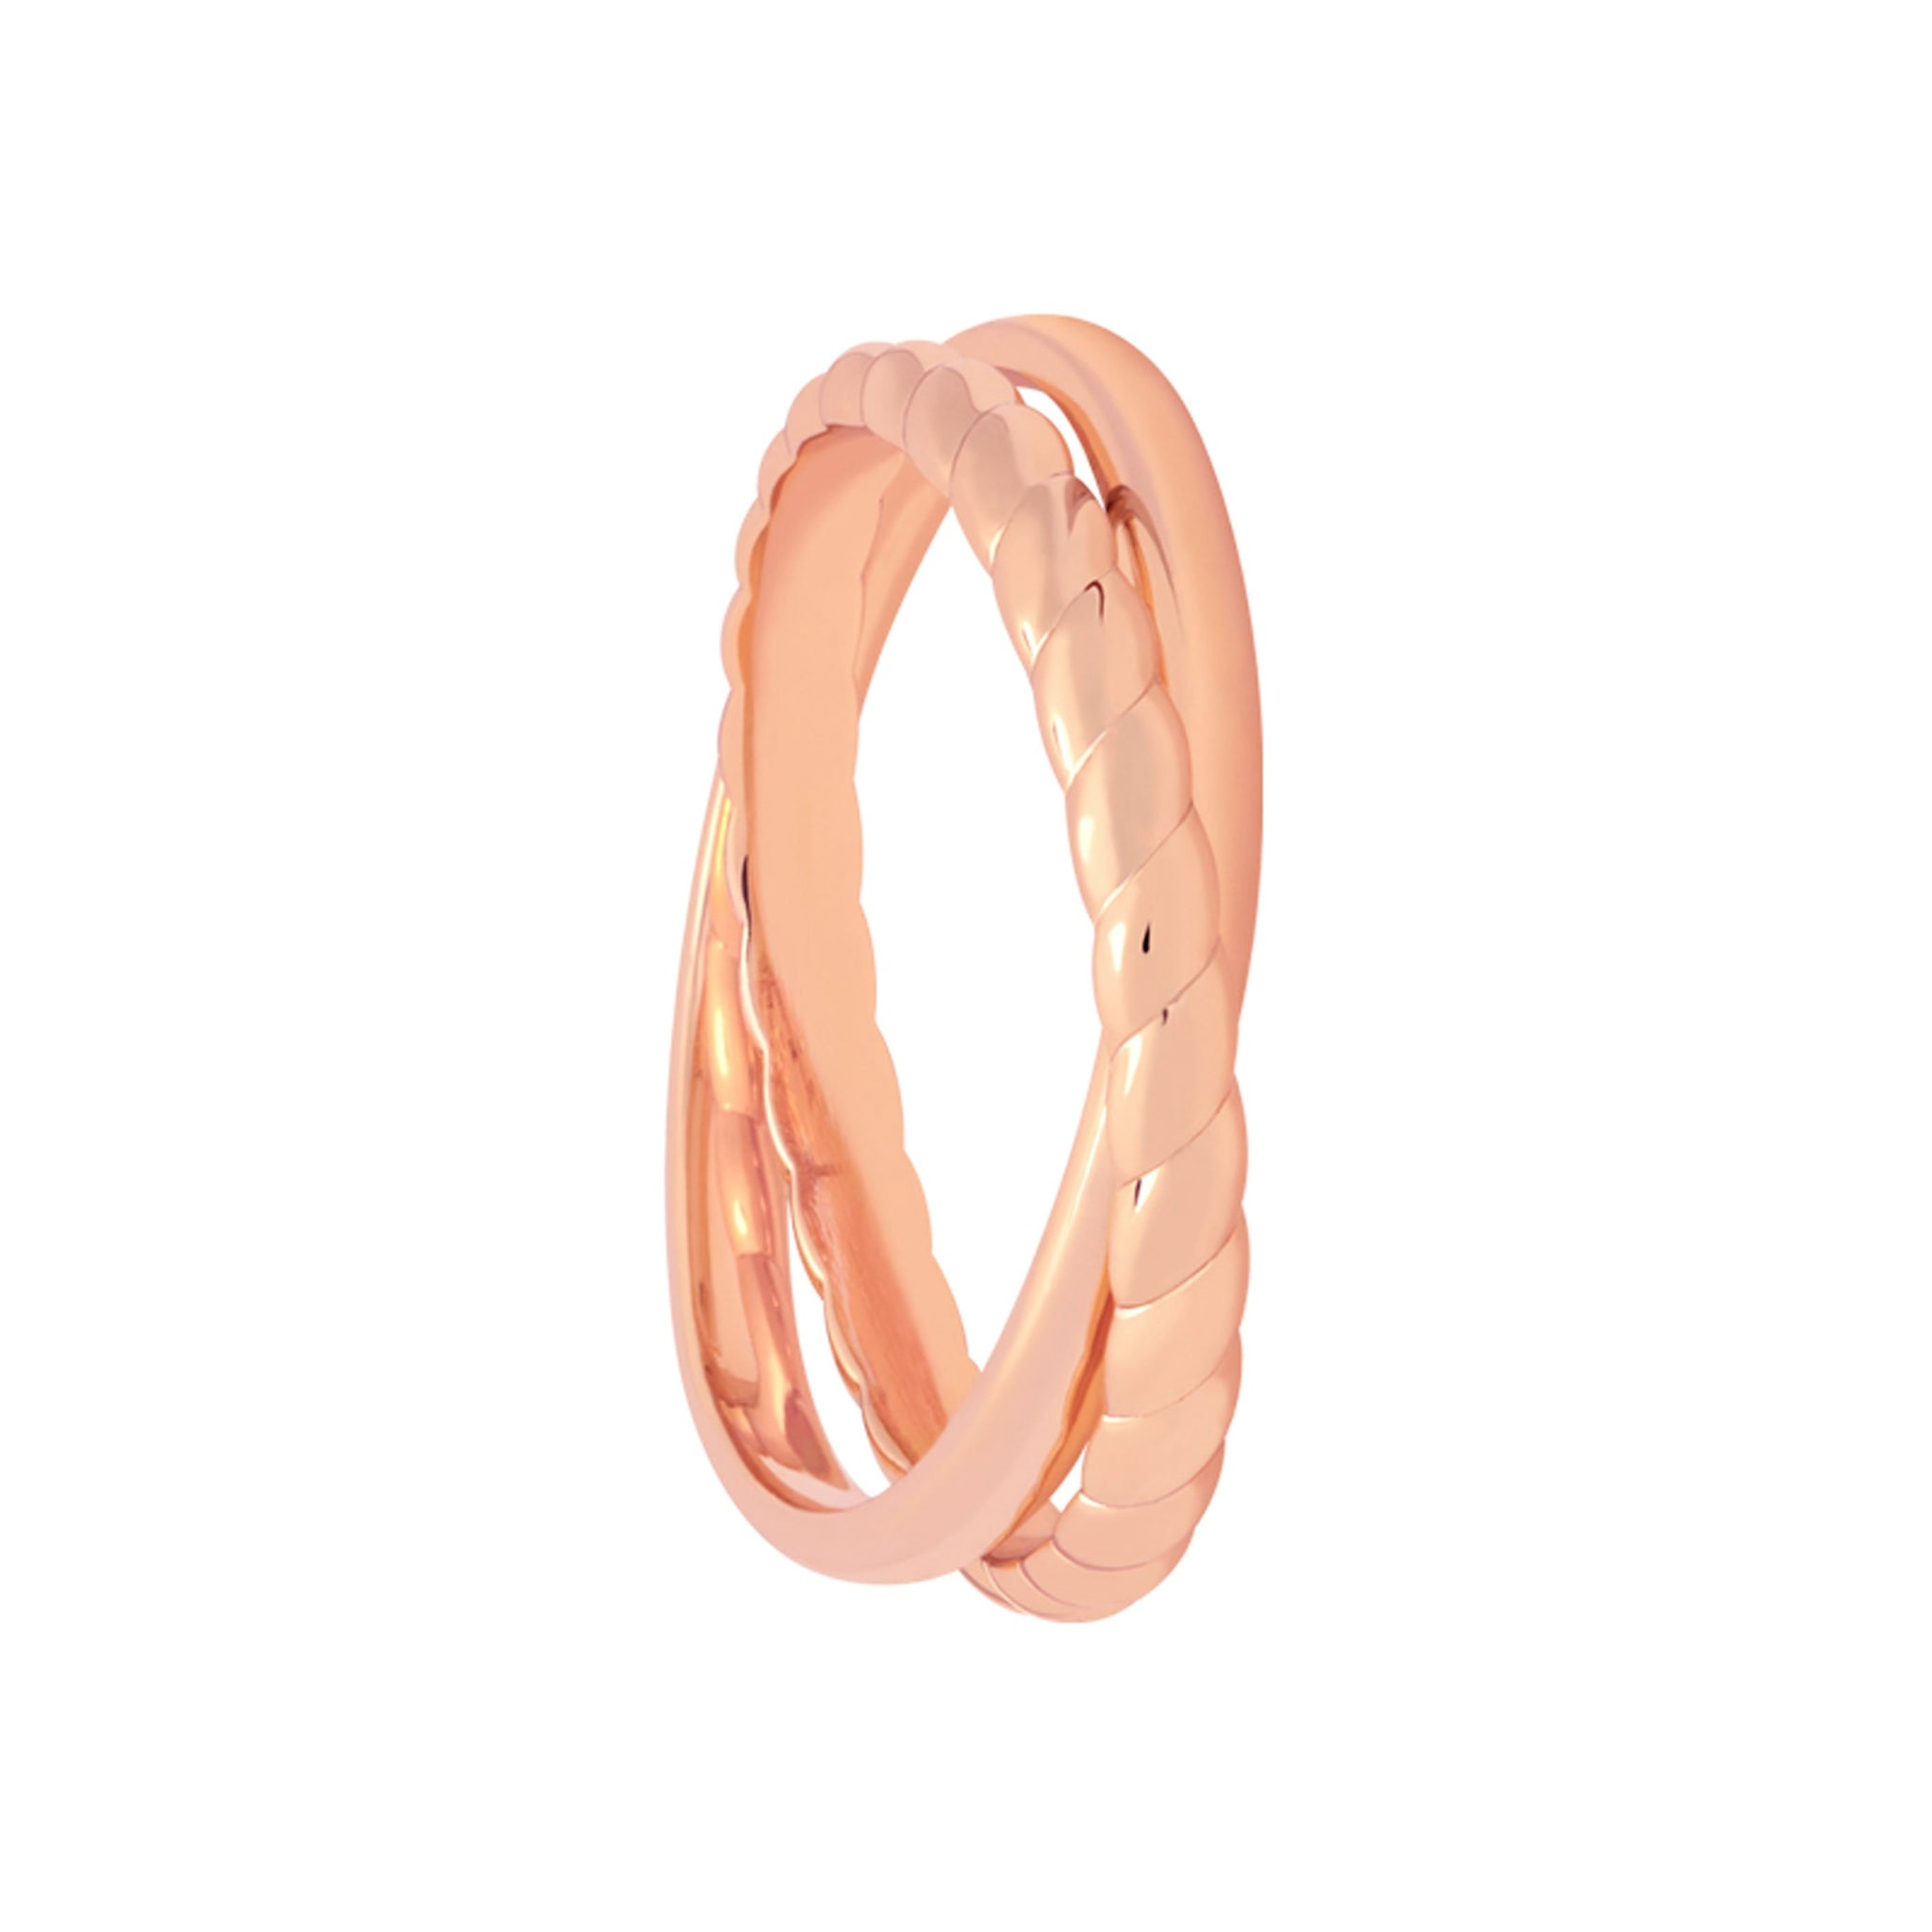 Interlocked Rope & Plain Band Ring in Rose Gold